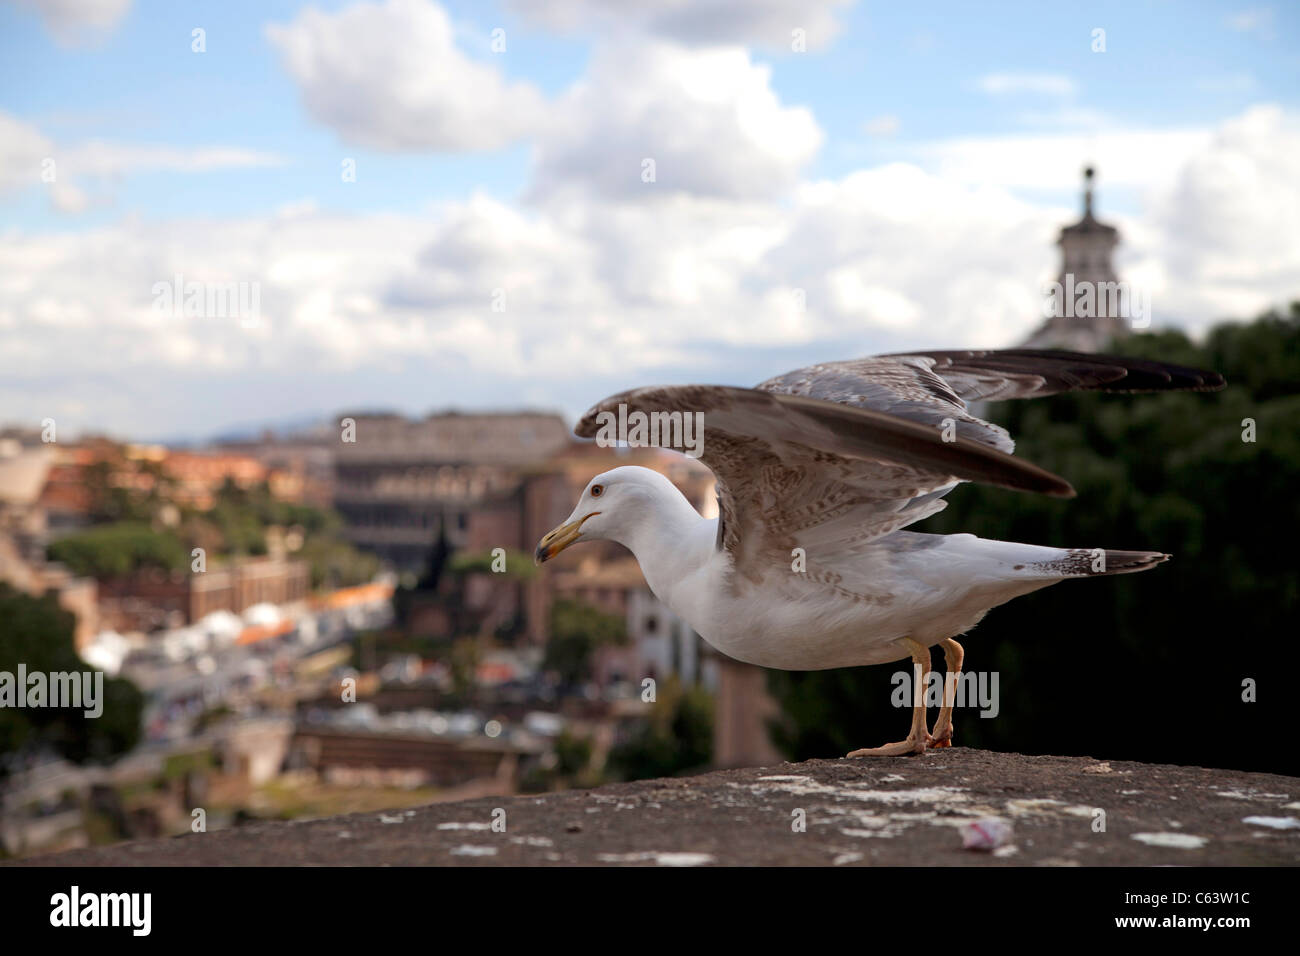 seagull departing towards the ancient Colosseum in Rome, Italy, Europe Stock Photo